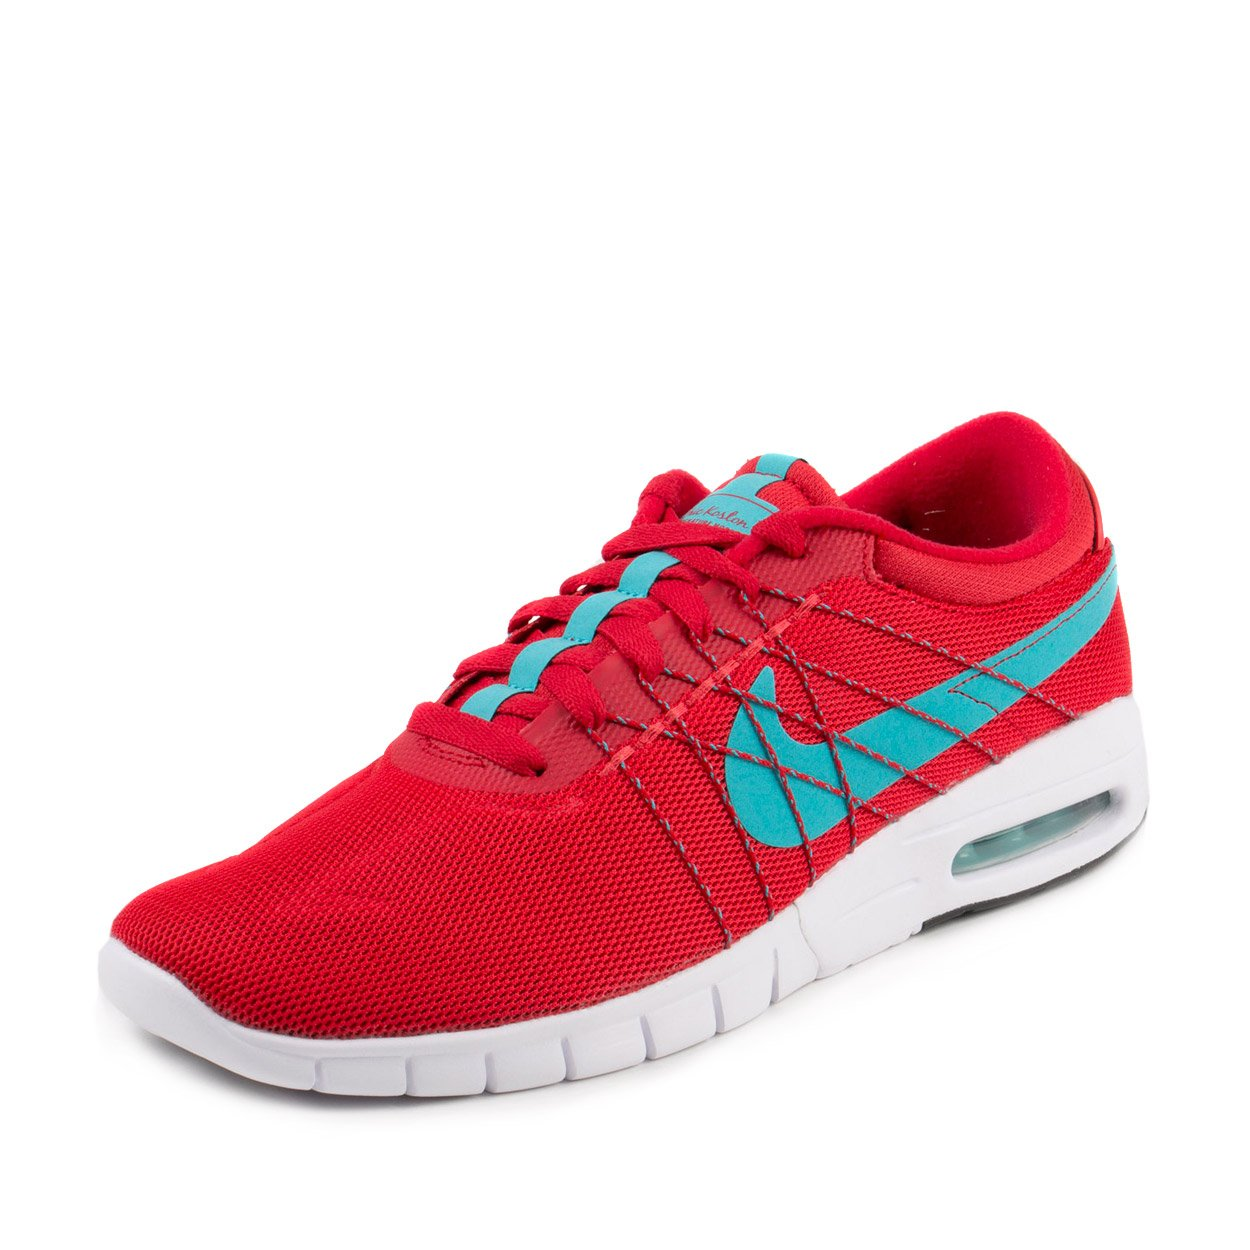 NIKE Men's SB Koston Max Skate Shoes… B002YT83MC 6|University Red/Omega Blue-white